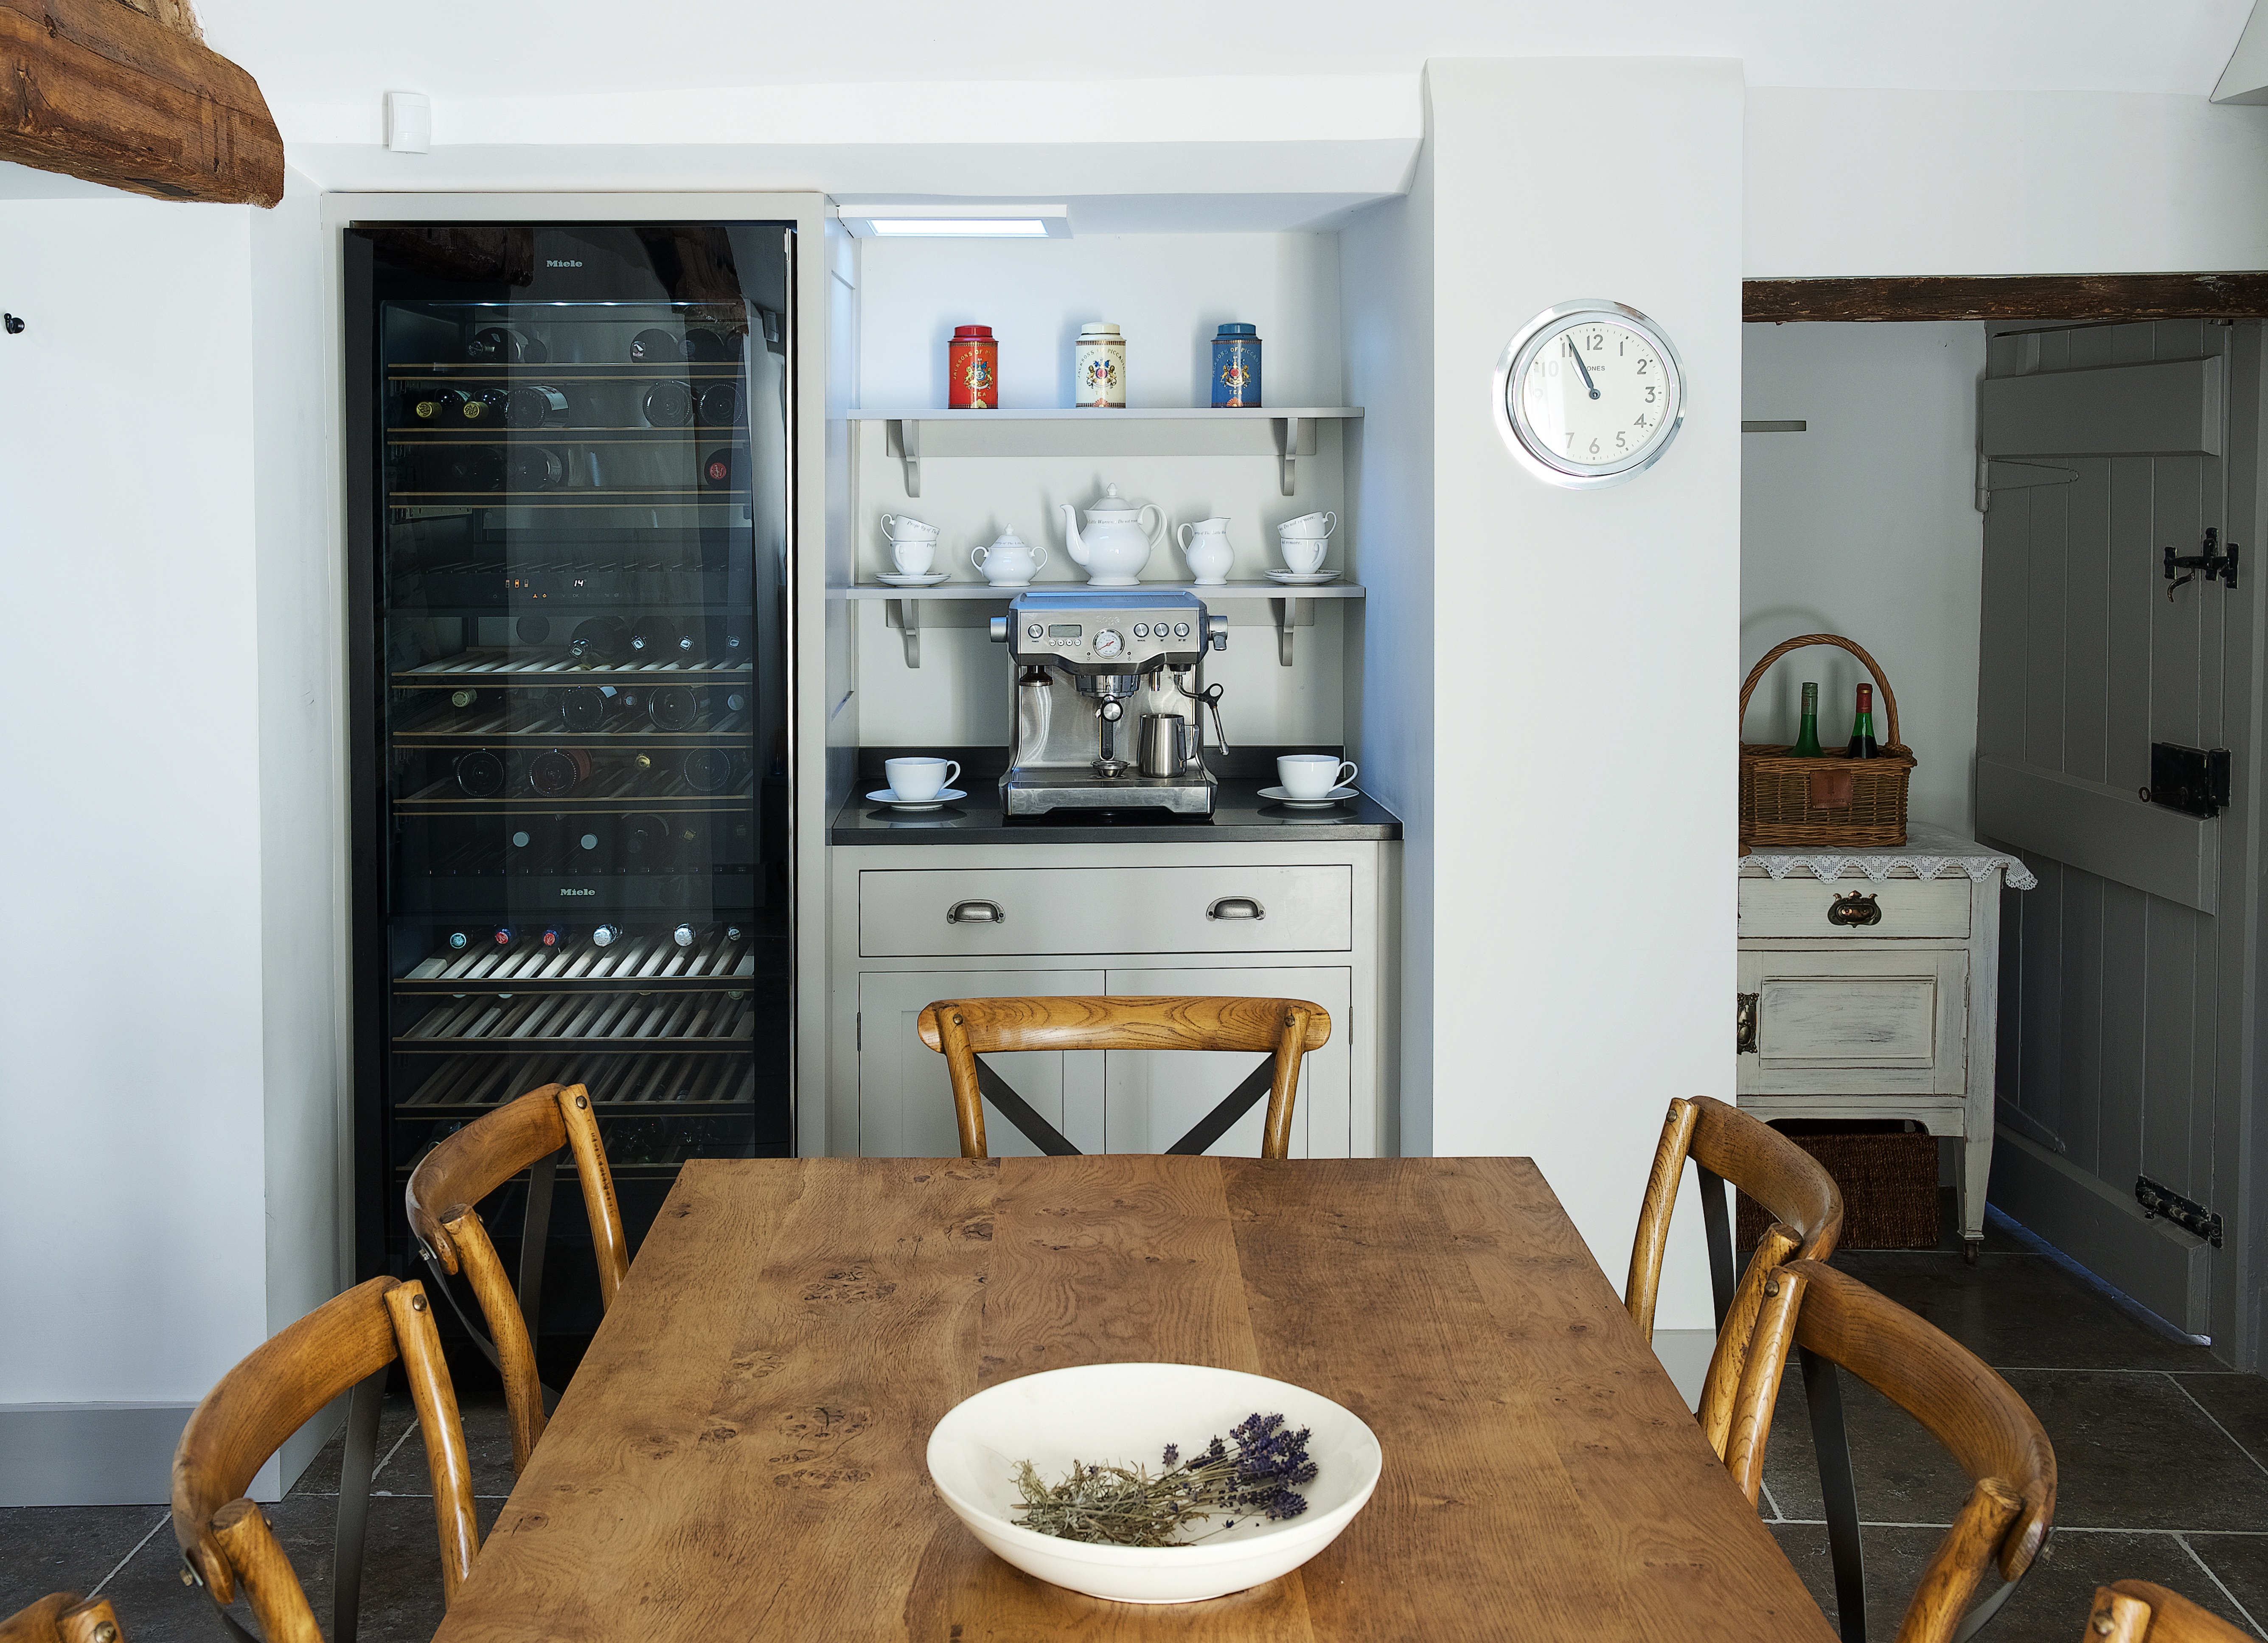 Miele wine fridge with bespoke shaker cabinets and shelves hand painted in Little Greene French Grey Dark with coffee machine.